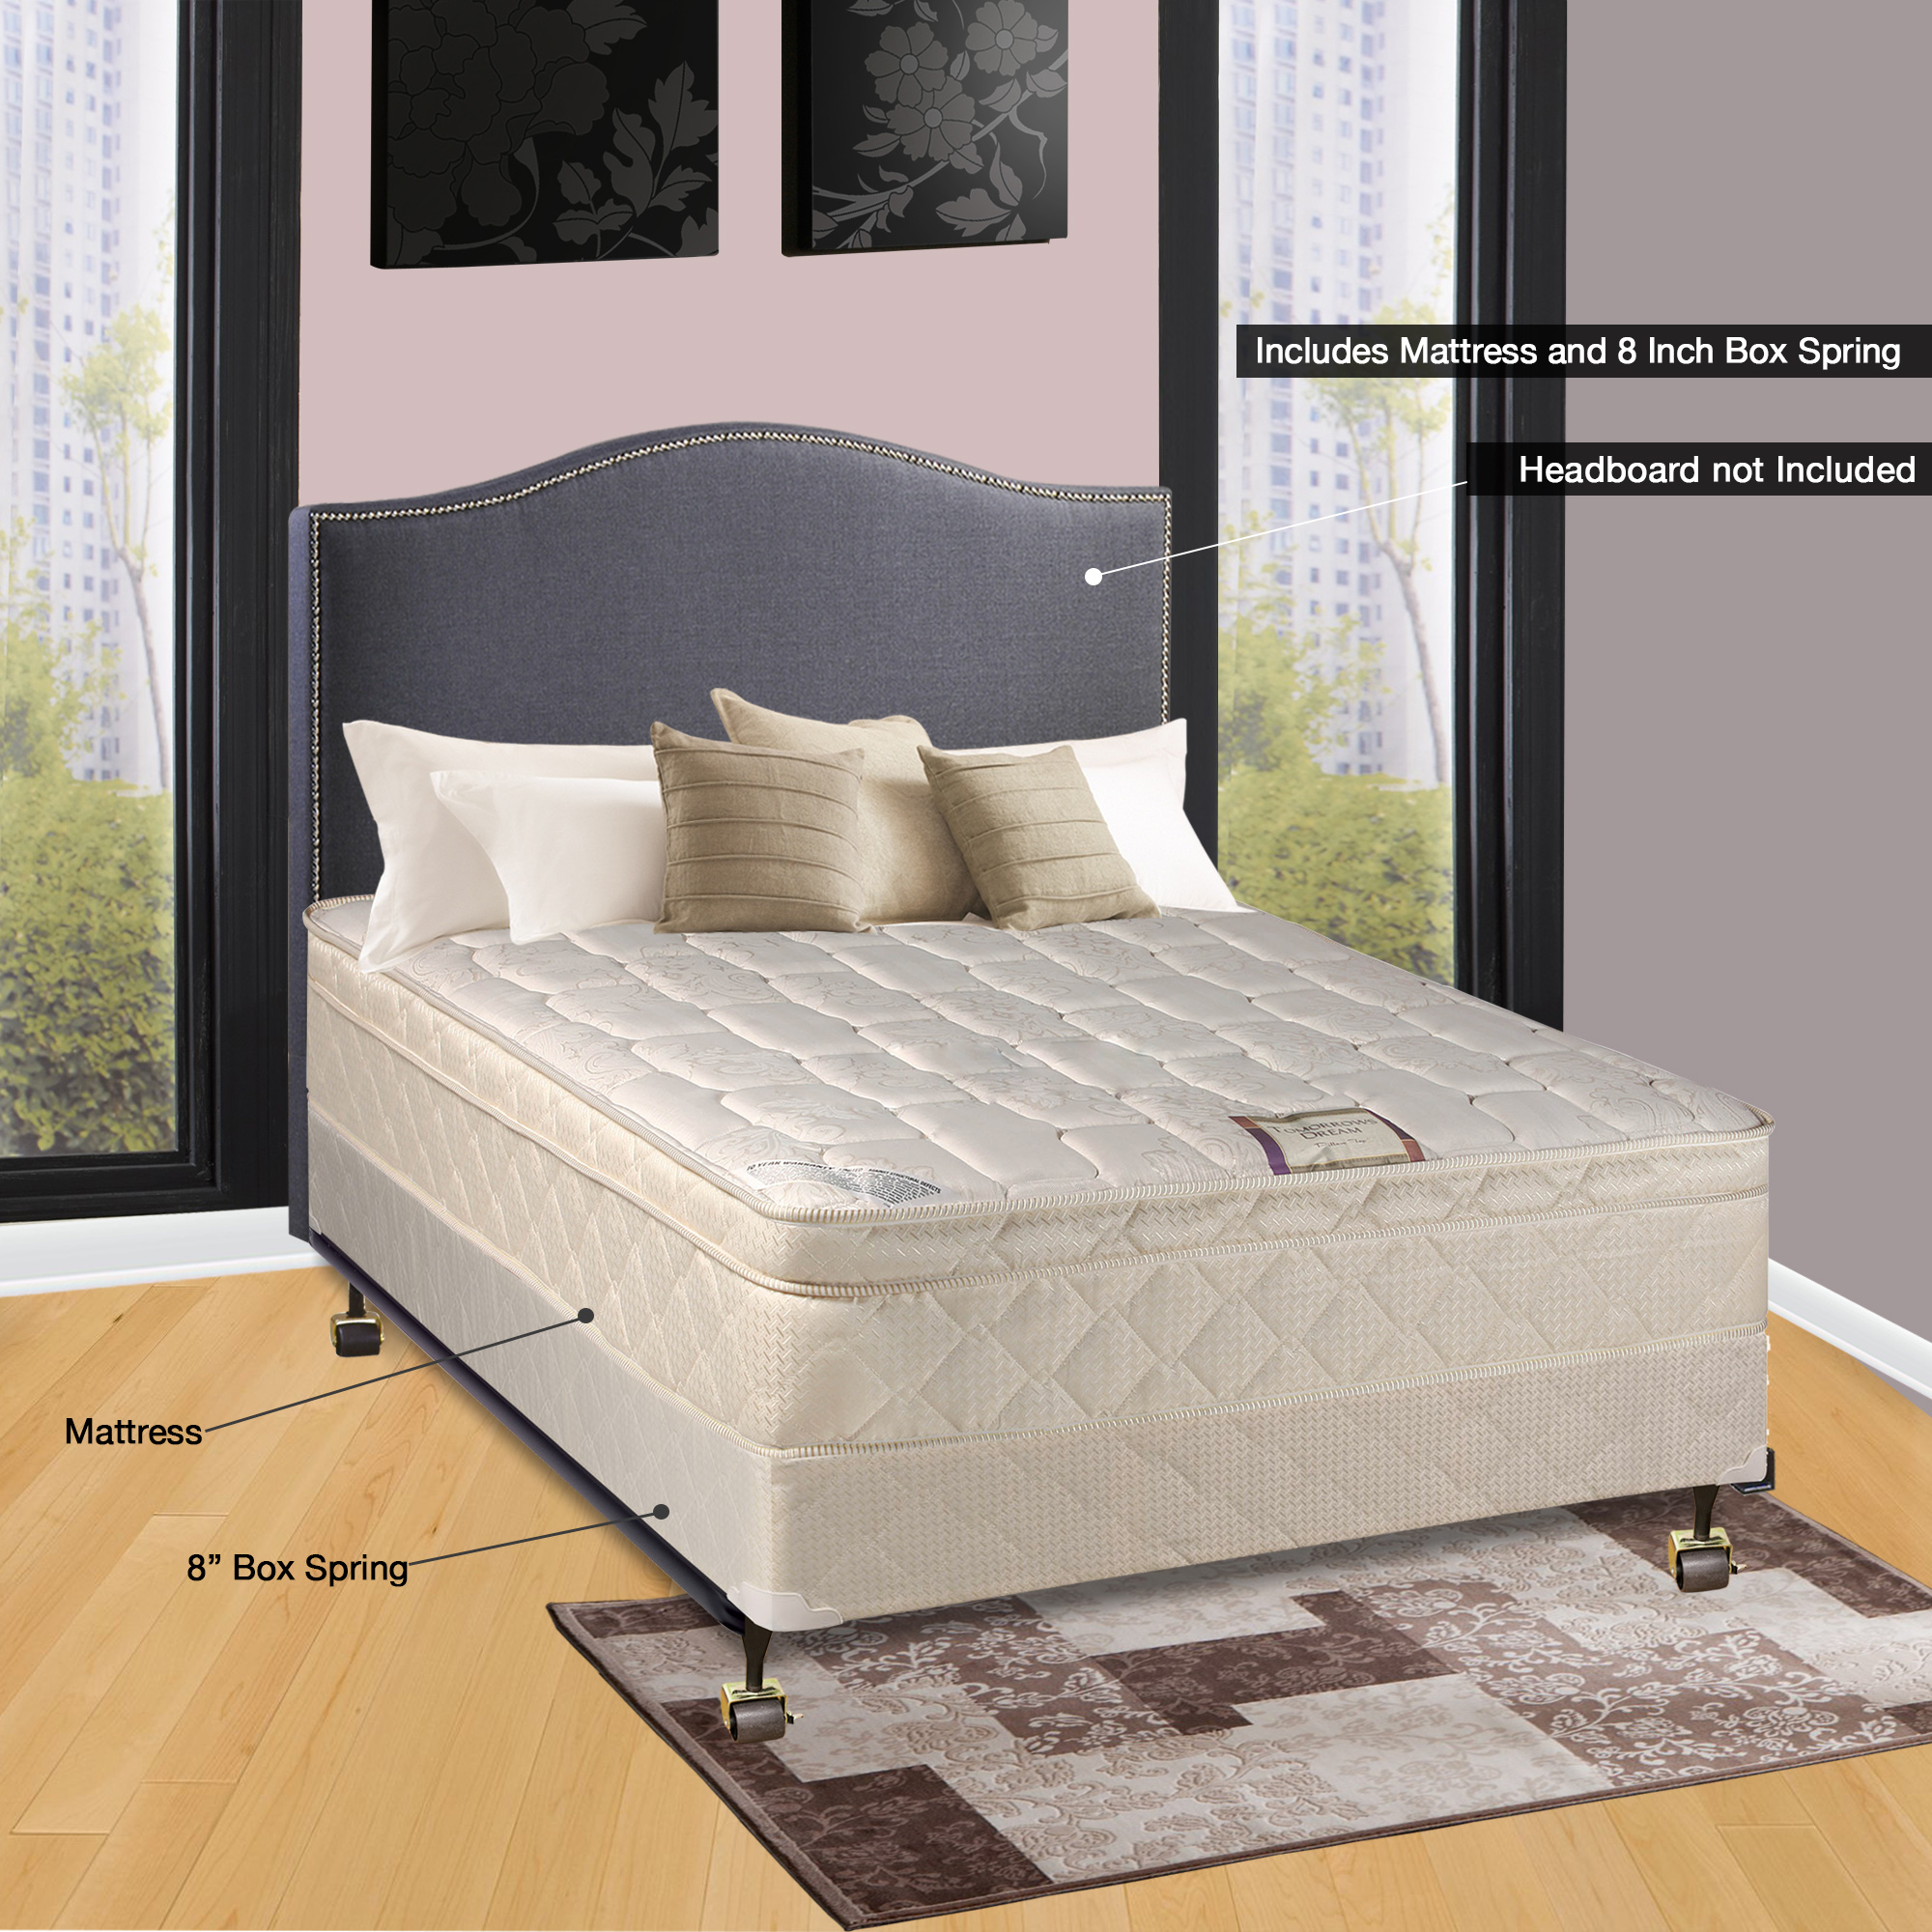 "Spinal Solution 9"" Pillowtop Fully Assembled Orthopedic Mattress and 5-inch Box Spring, Full by Spinal Solution"